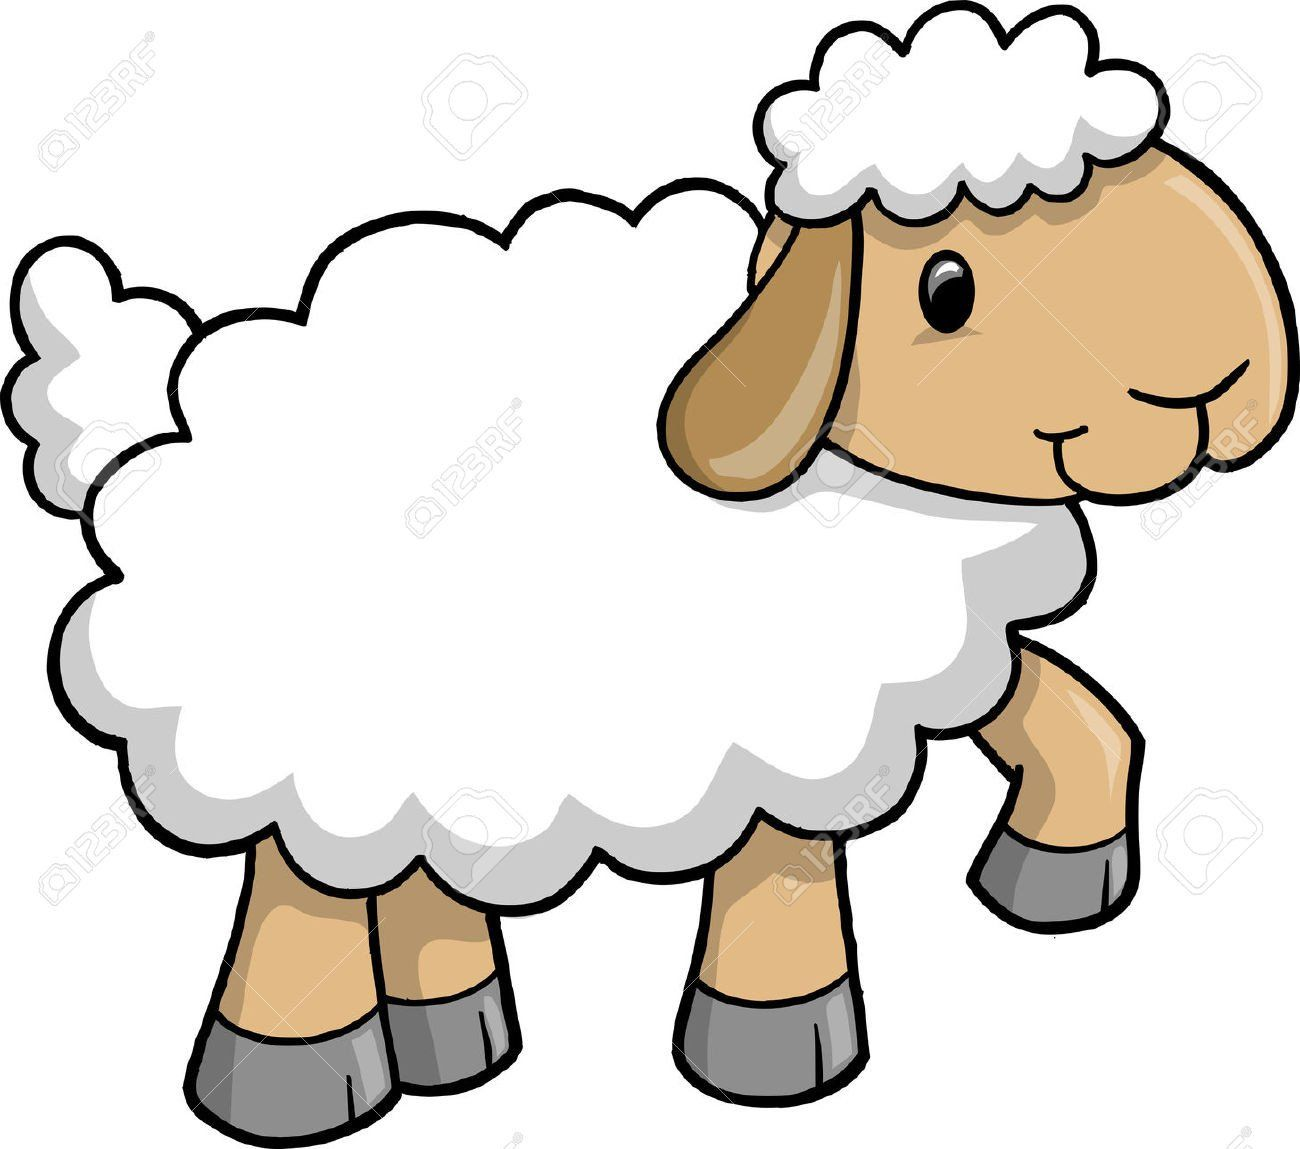 Lost Sheep Coloring Page Luxury Lamb Clipart Lost Sheep